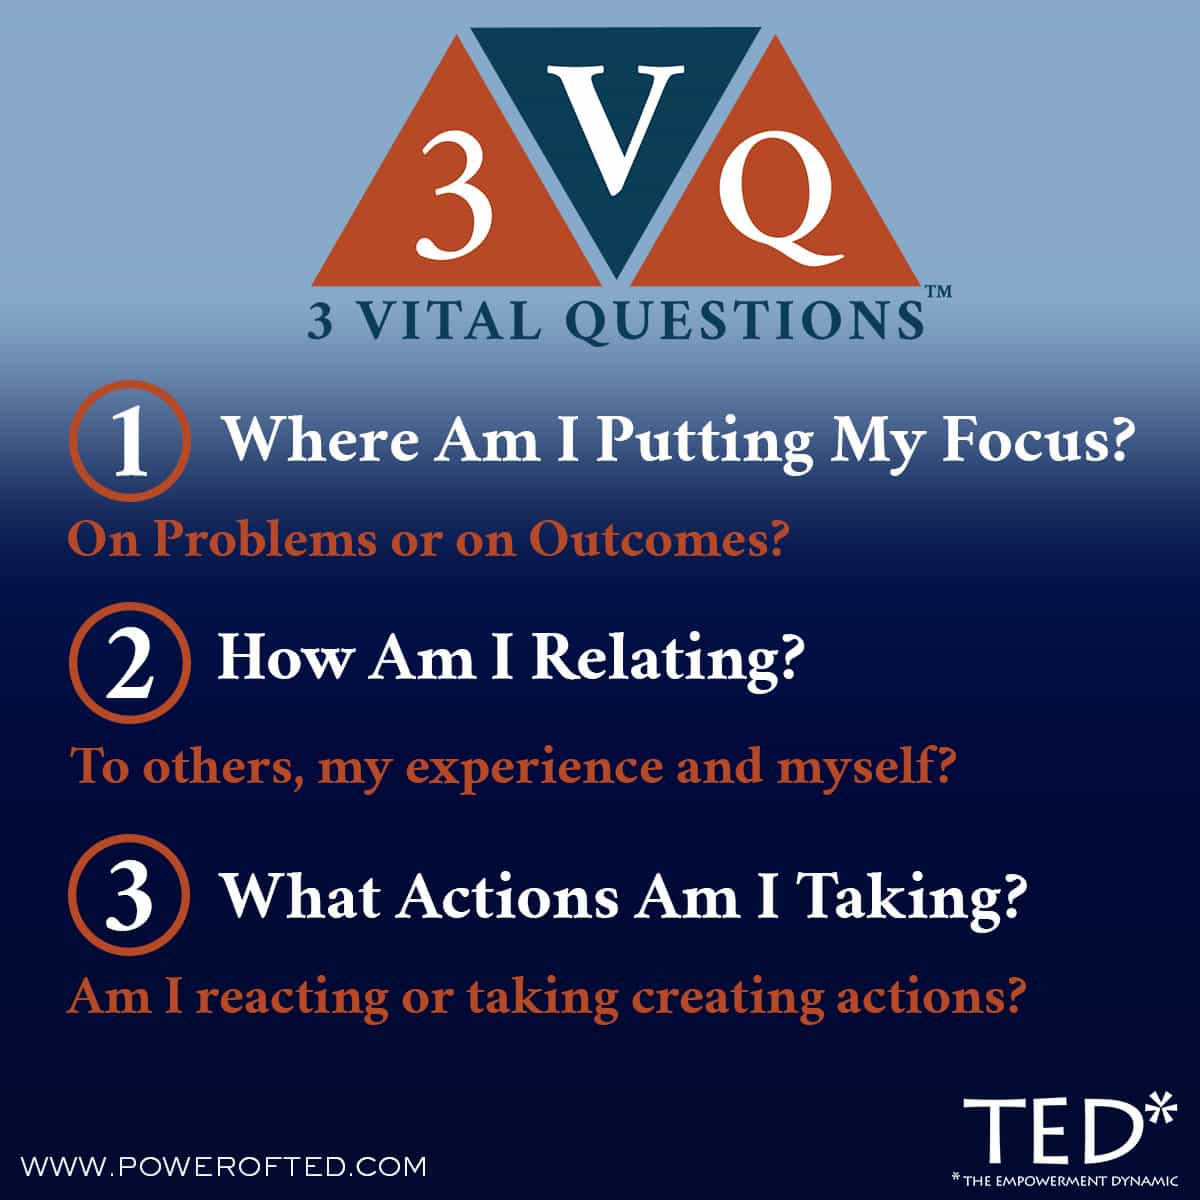 3 Vital Questions (TM) 1. Where am I putting my focus? On Problems or on Outcomes? 2. How am I relating? To others, my experiences and myself? 3. What actions am I taking? Am I reacting or taking creating actions?